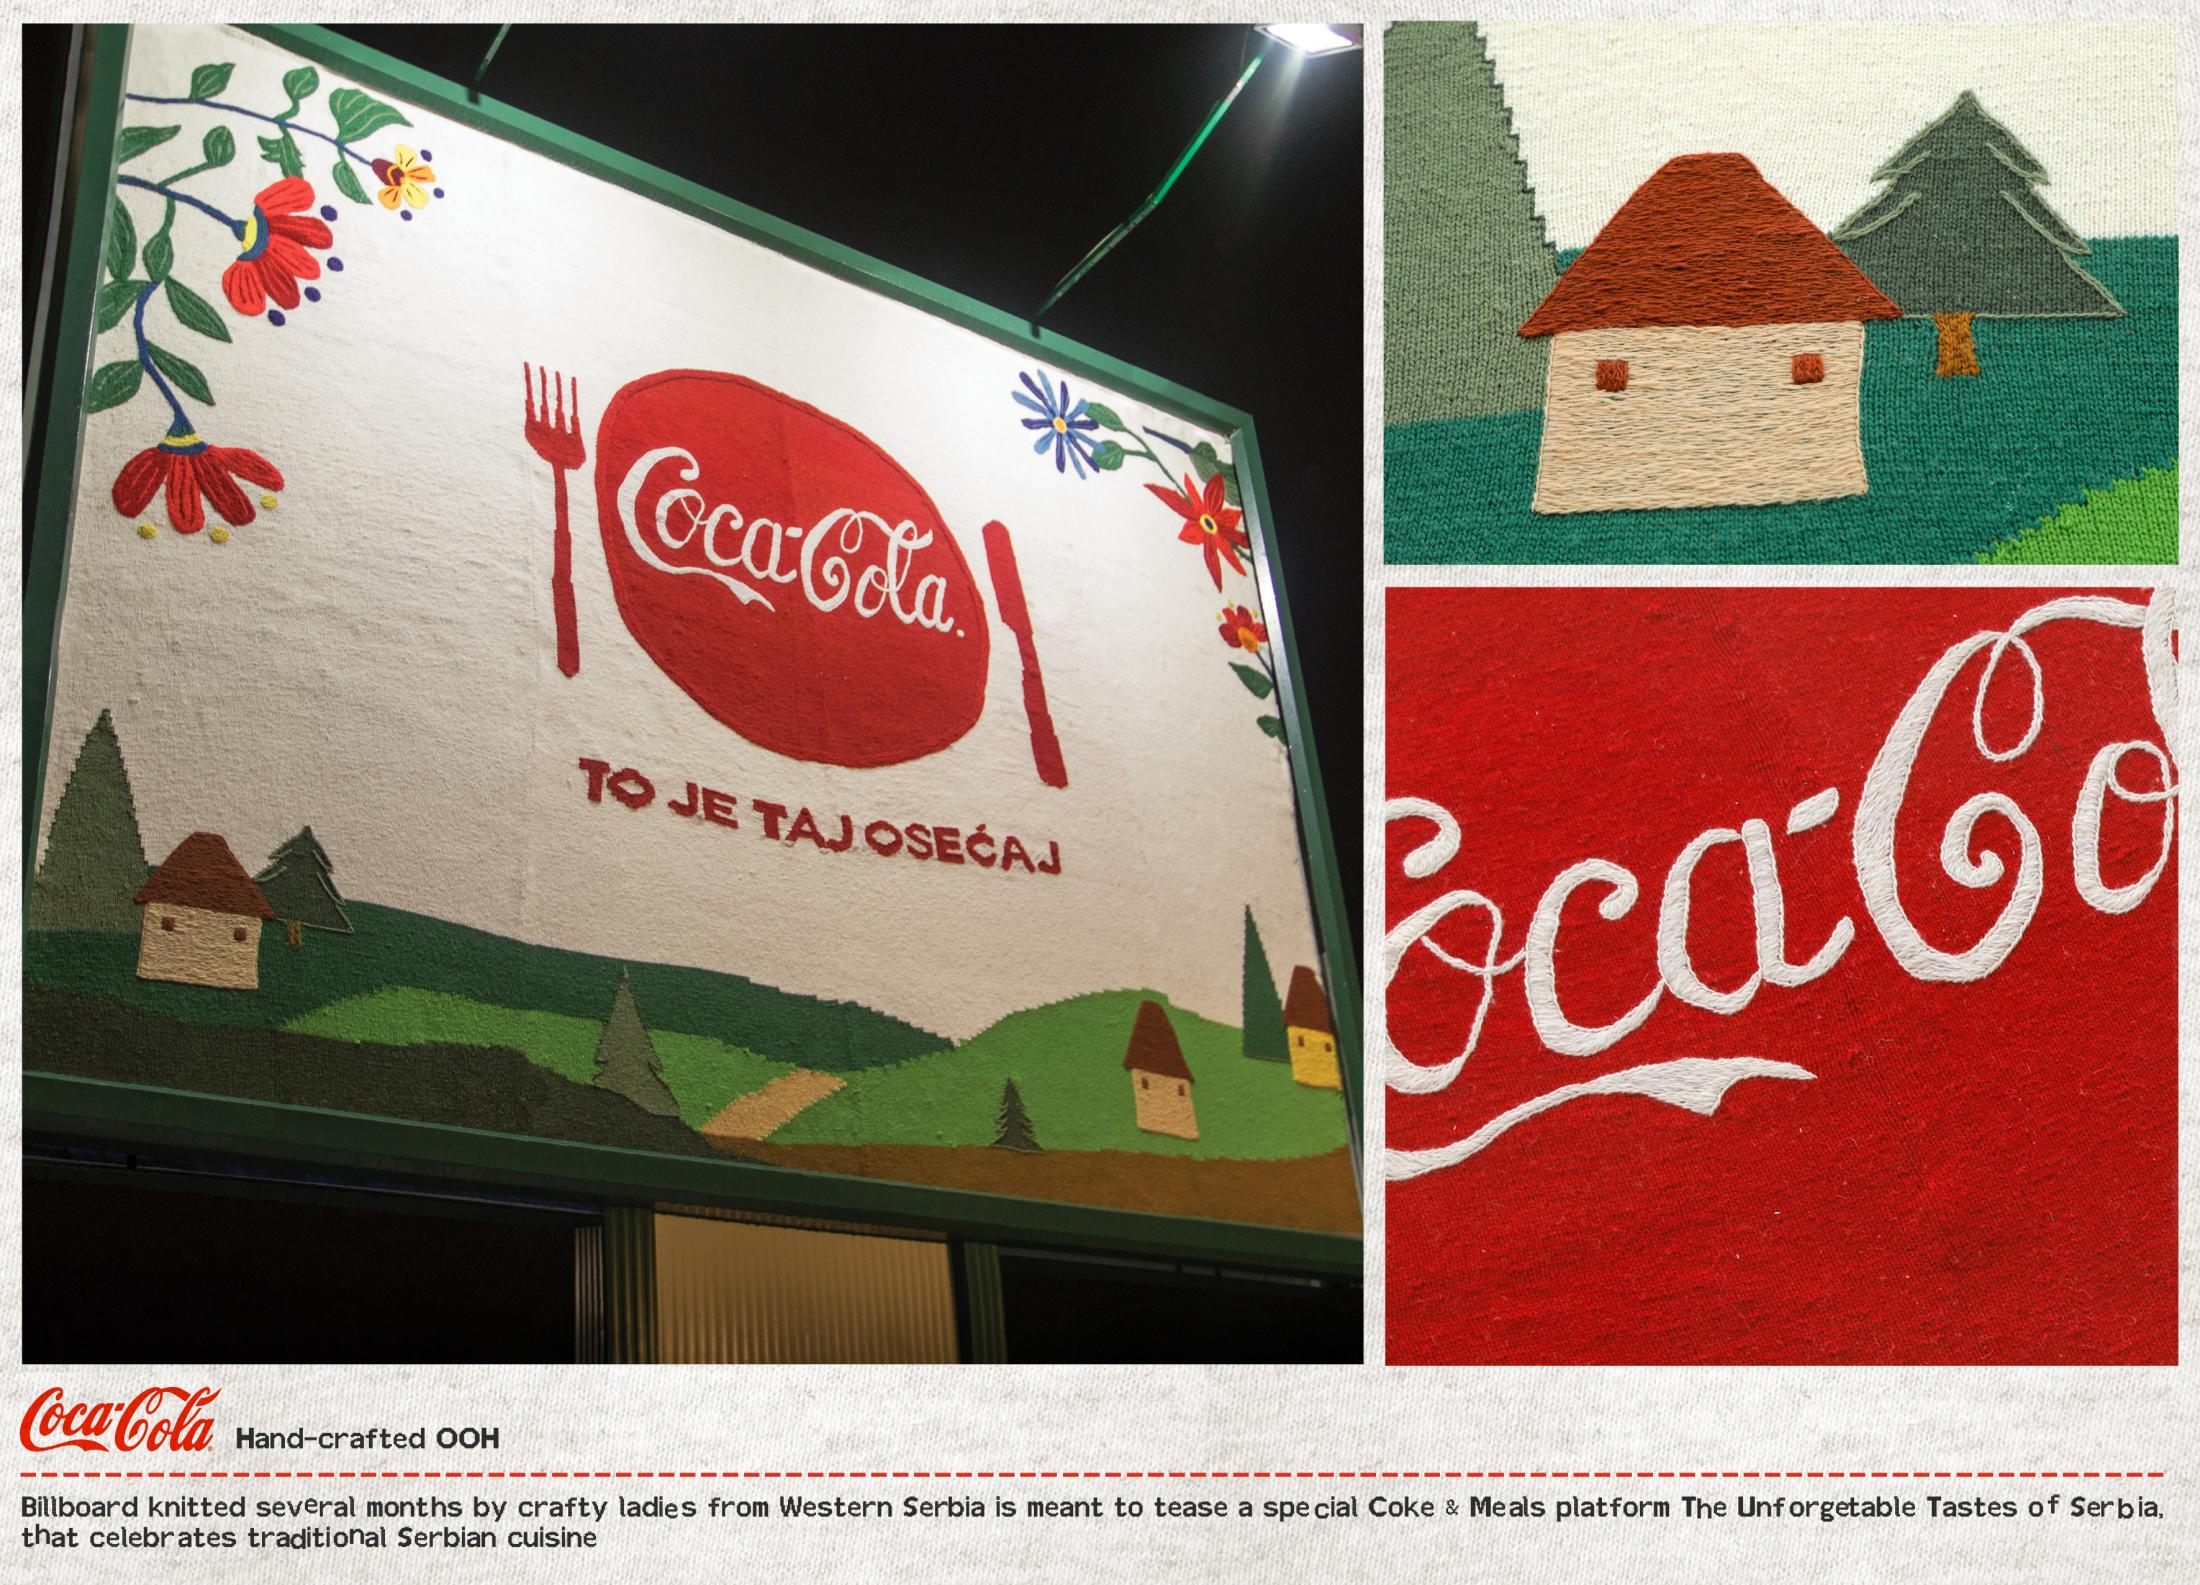 coca-cola_hand-crafted_billboards_1.jpg